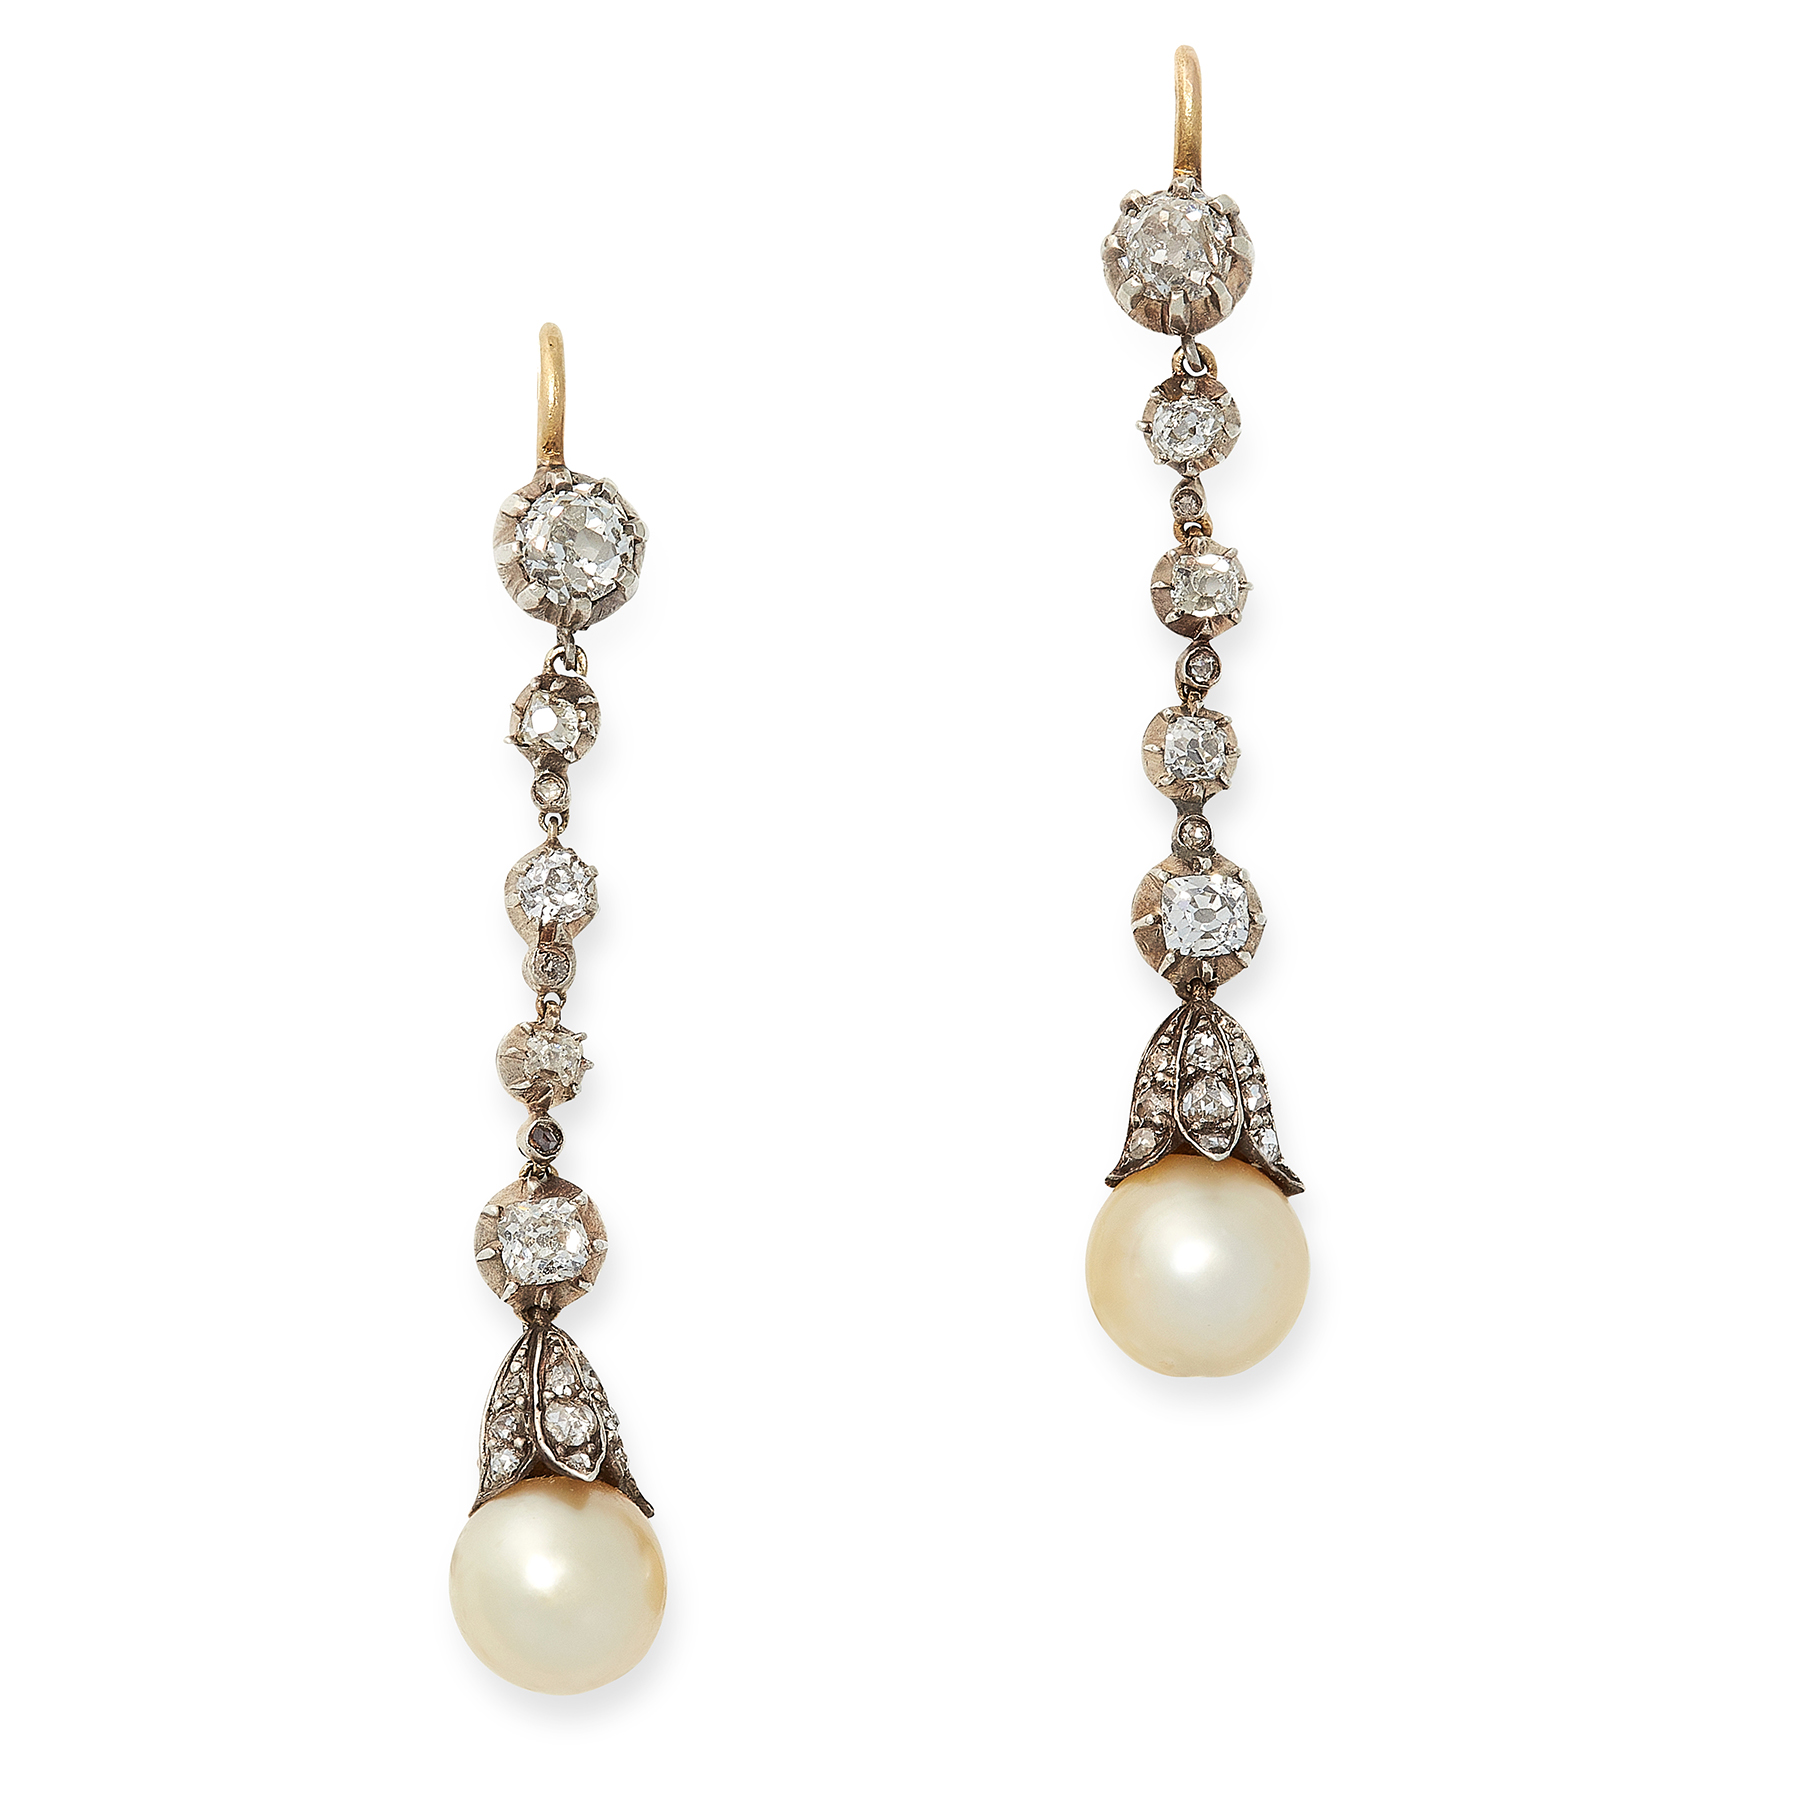 A PAIR OF PEARL AND DIAMOND DROP EARRINGS in yellow gold and silver, each designed as a drop